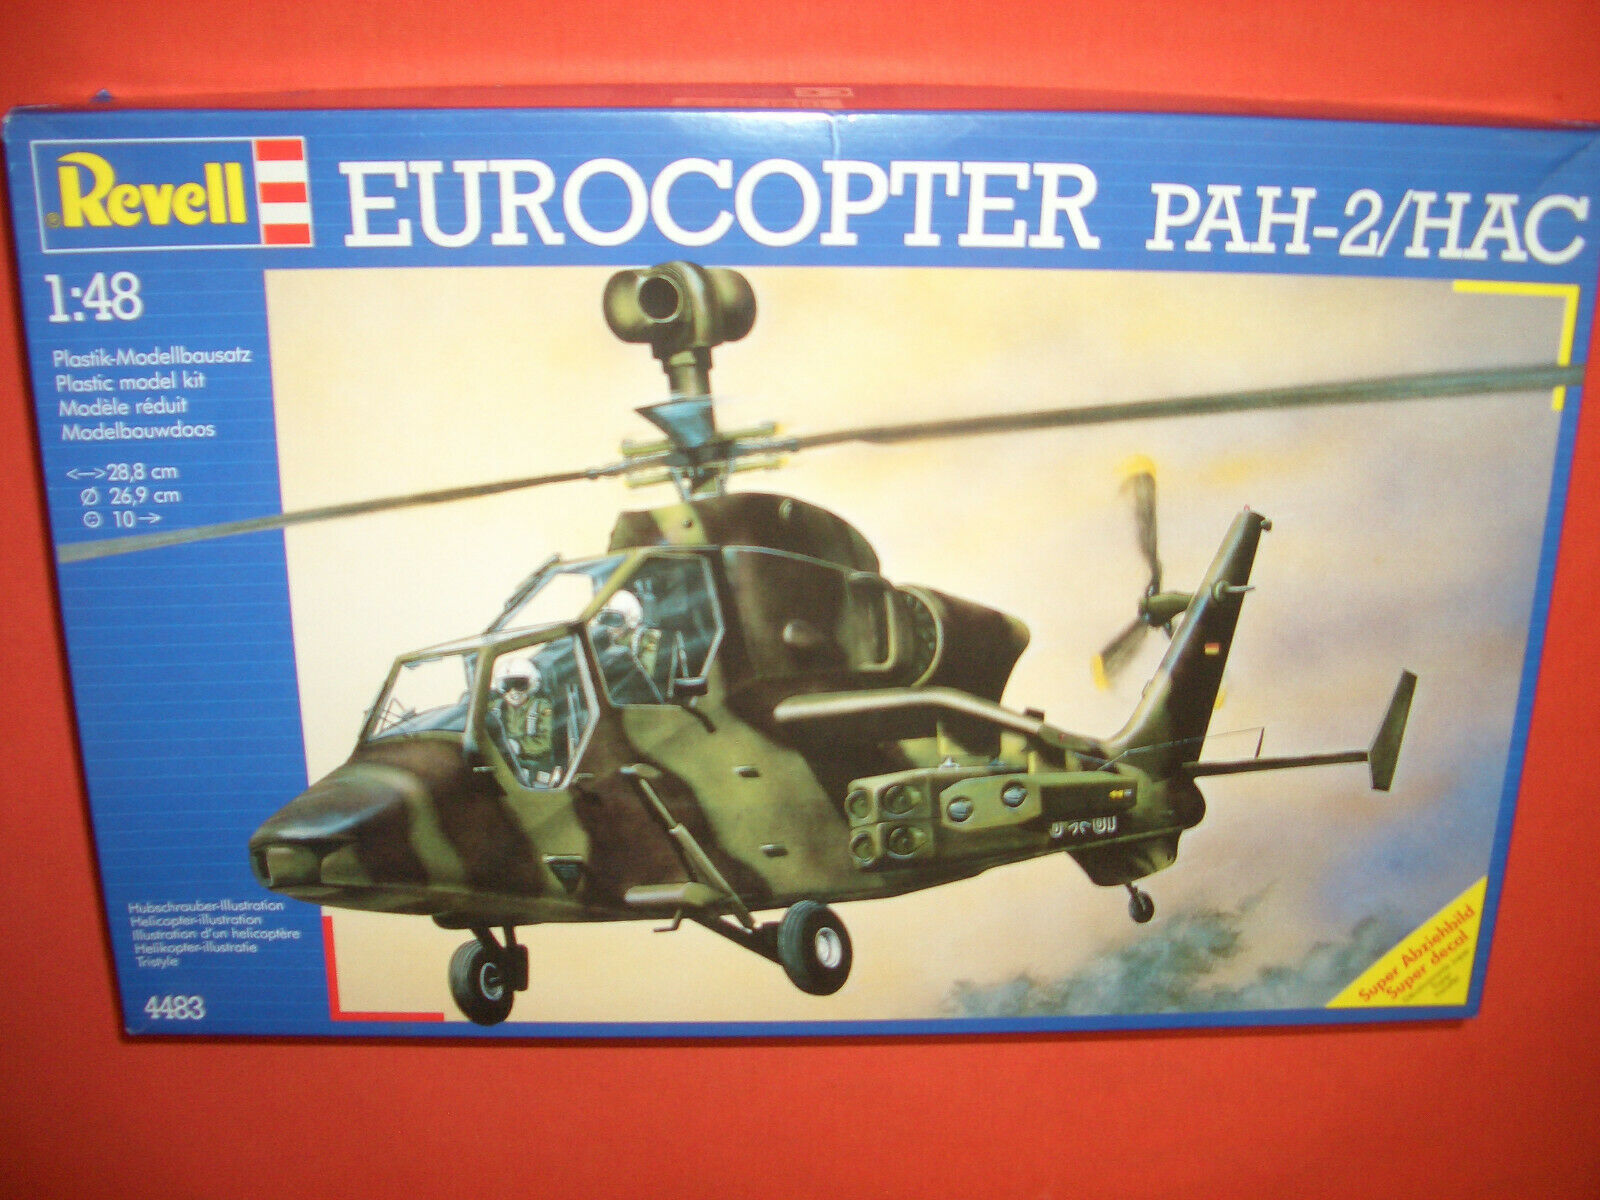 1 48 Revell 4483, EUROCOPTER PAH-2   HAC  | Clearance Sale